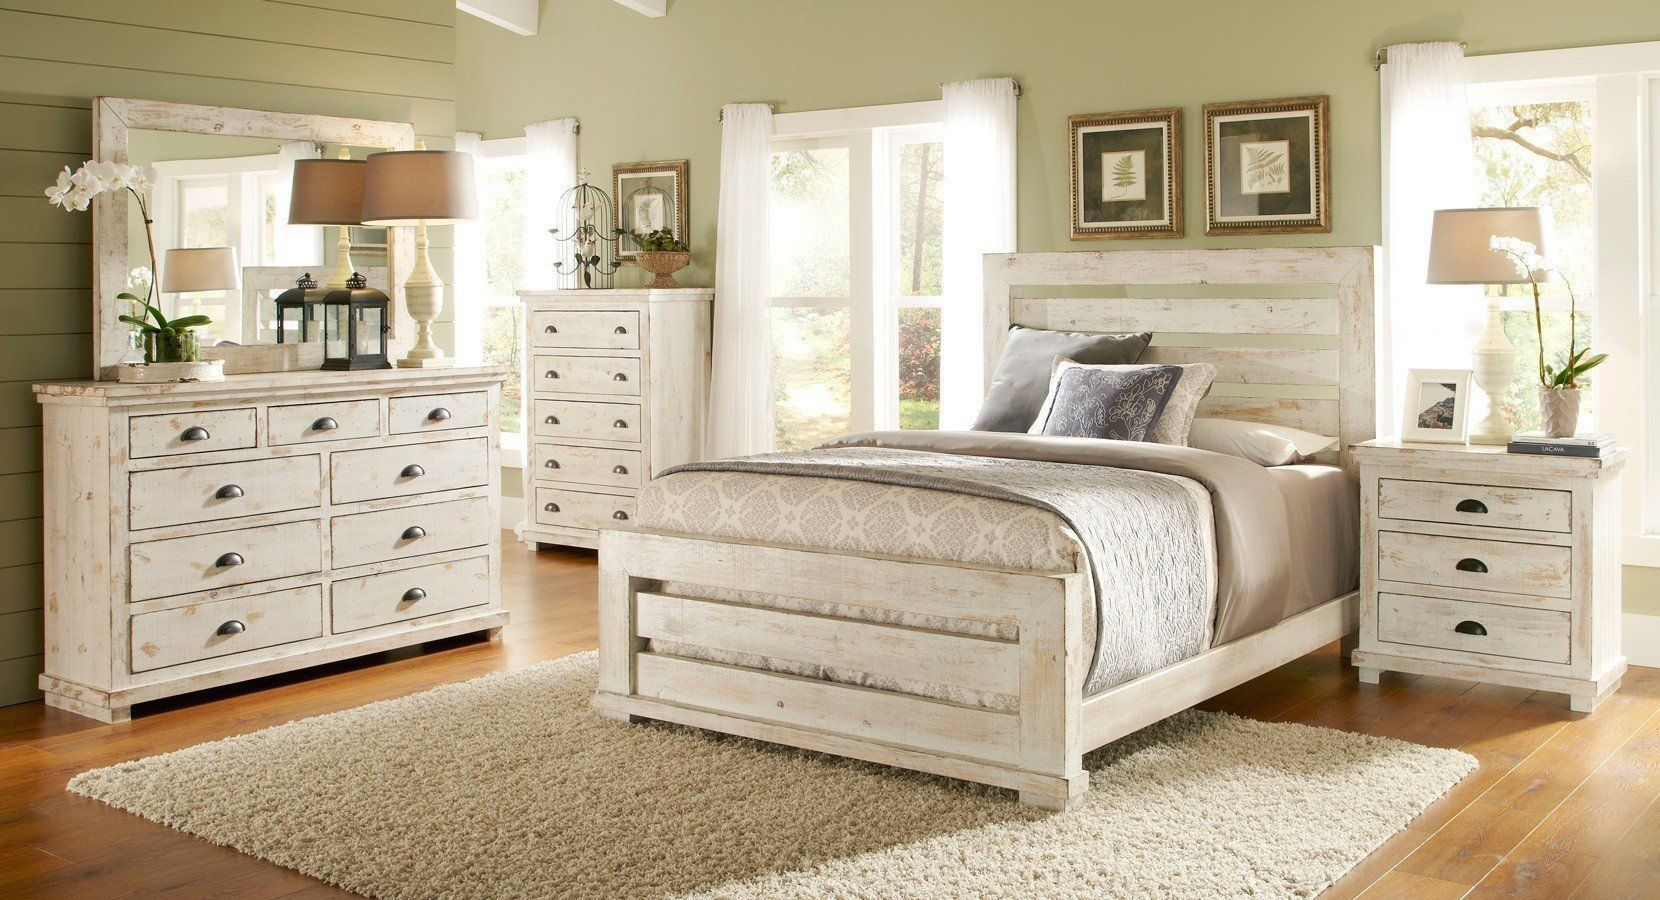 Willow Slat Bedroom Set Distressed White Bedroom Furniture In